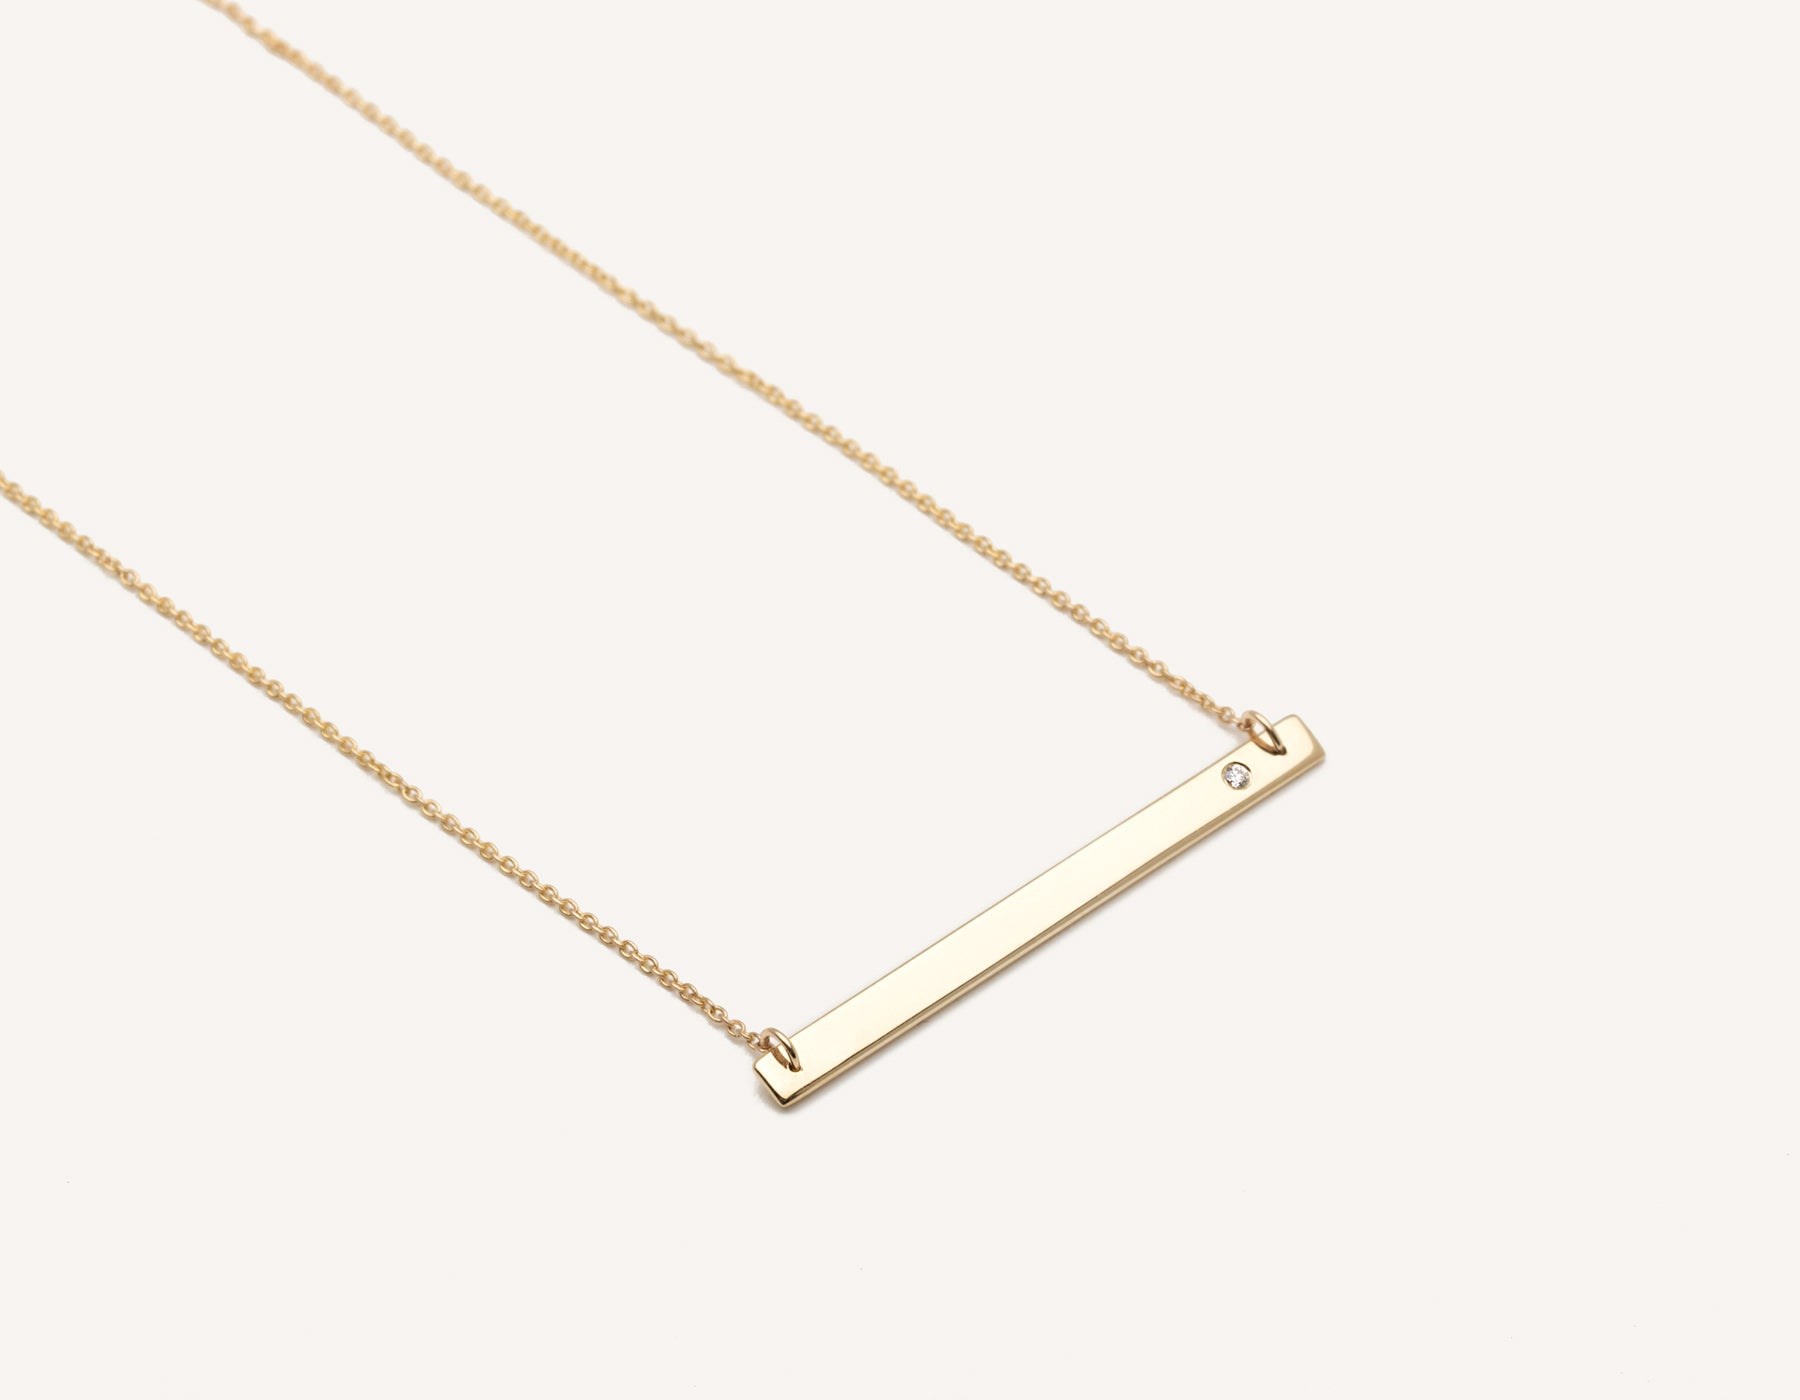 Stylish engravable 14k solid gold Bar Necklace with small round diamond on classic chain by Vrai & Oro minimalist jewelry, 14K Yellow Gold